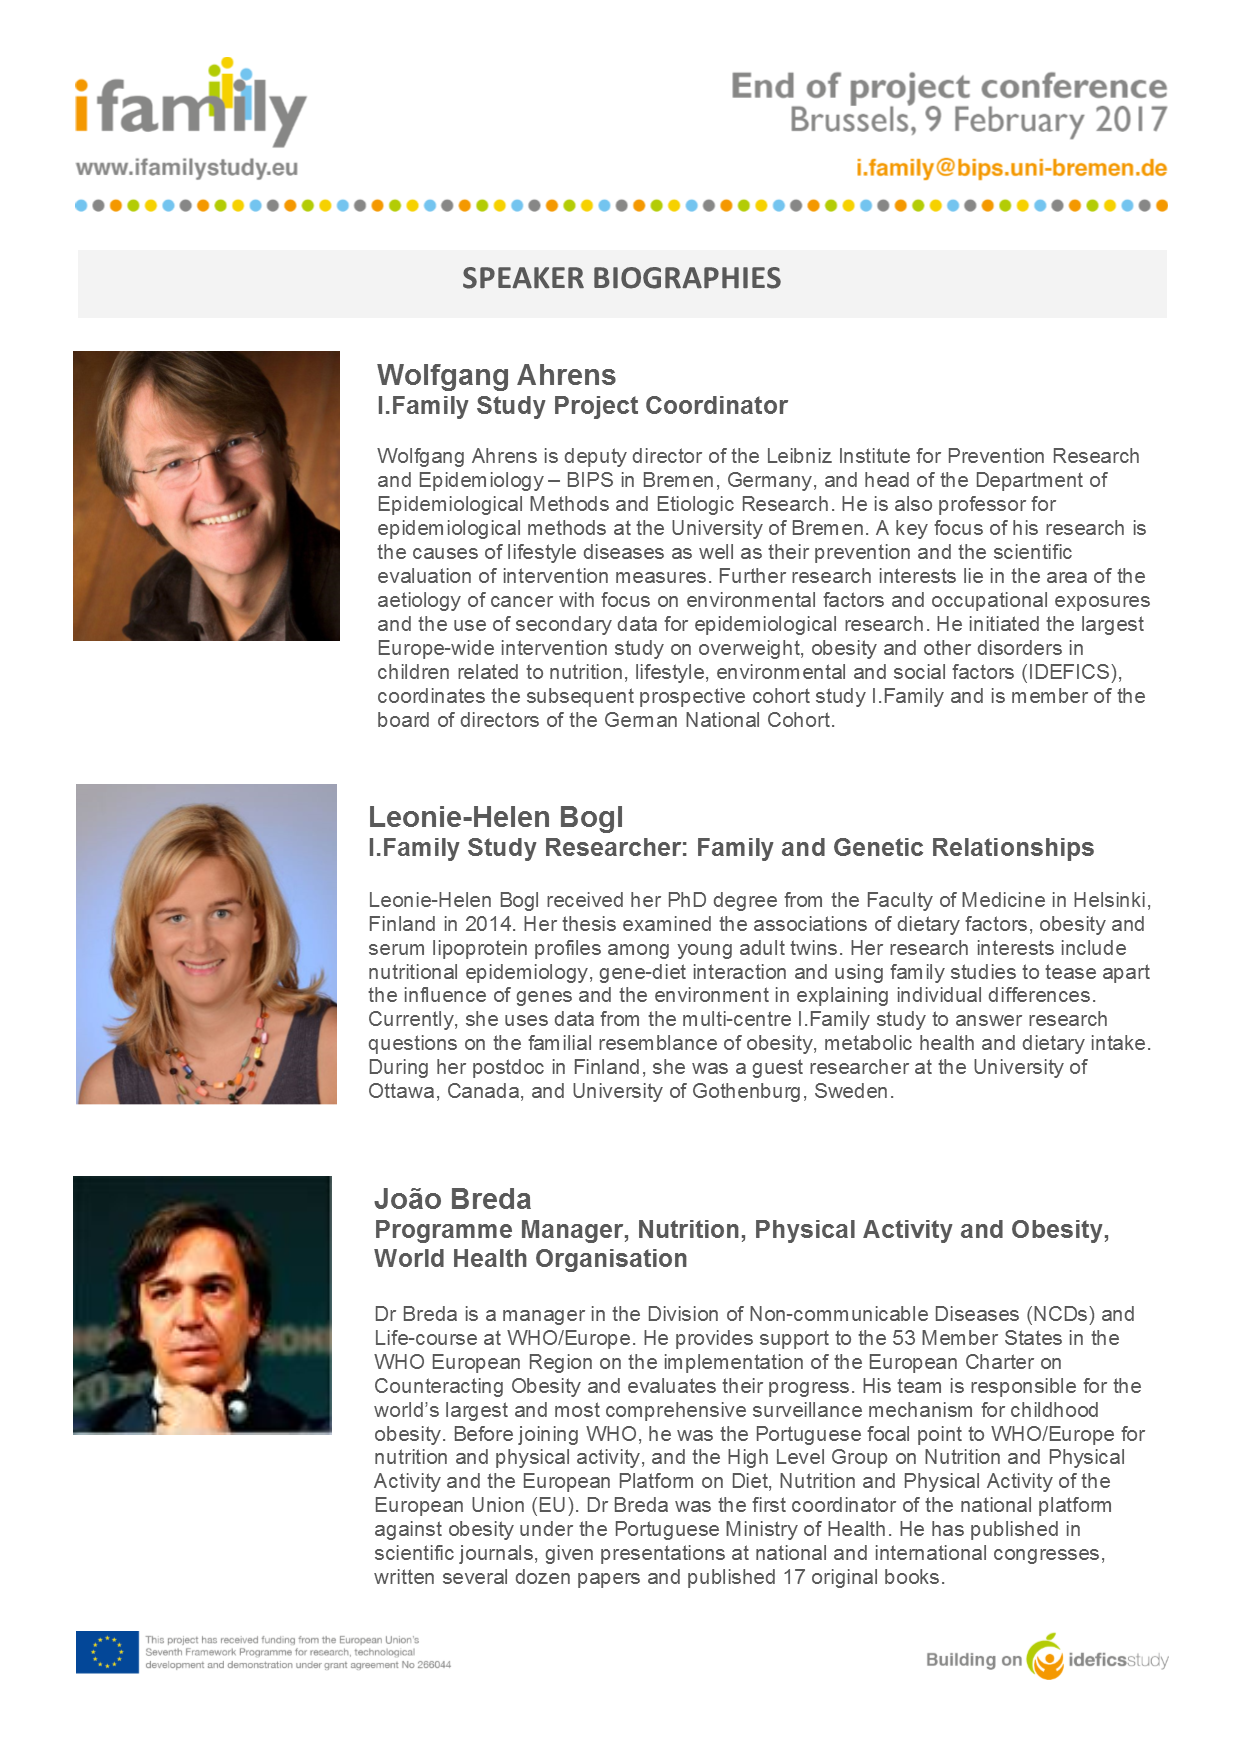 how to write a conference speaker biographies